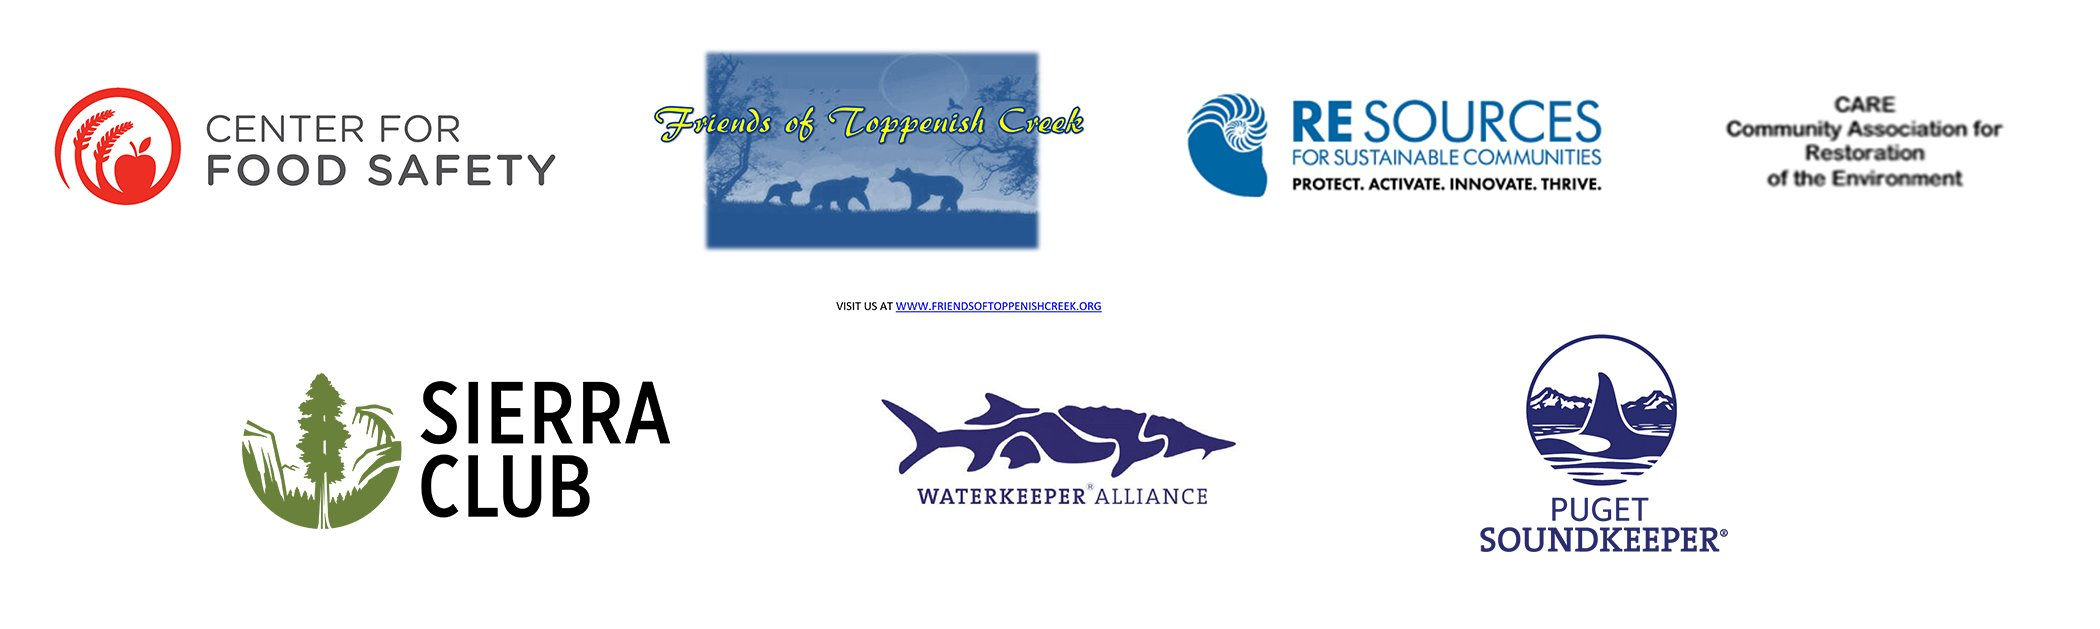 Center for Food Safety, Friends of Toppenish Creek, RESources for Sustainable Communities, CARE, Sierra Club, Waterkeeper Alliance, Puget Soundkeeper